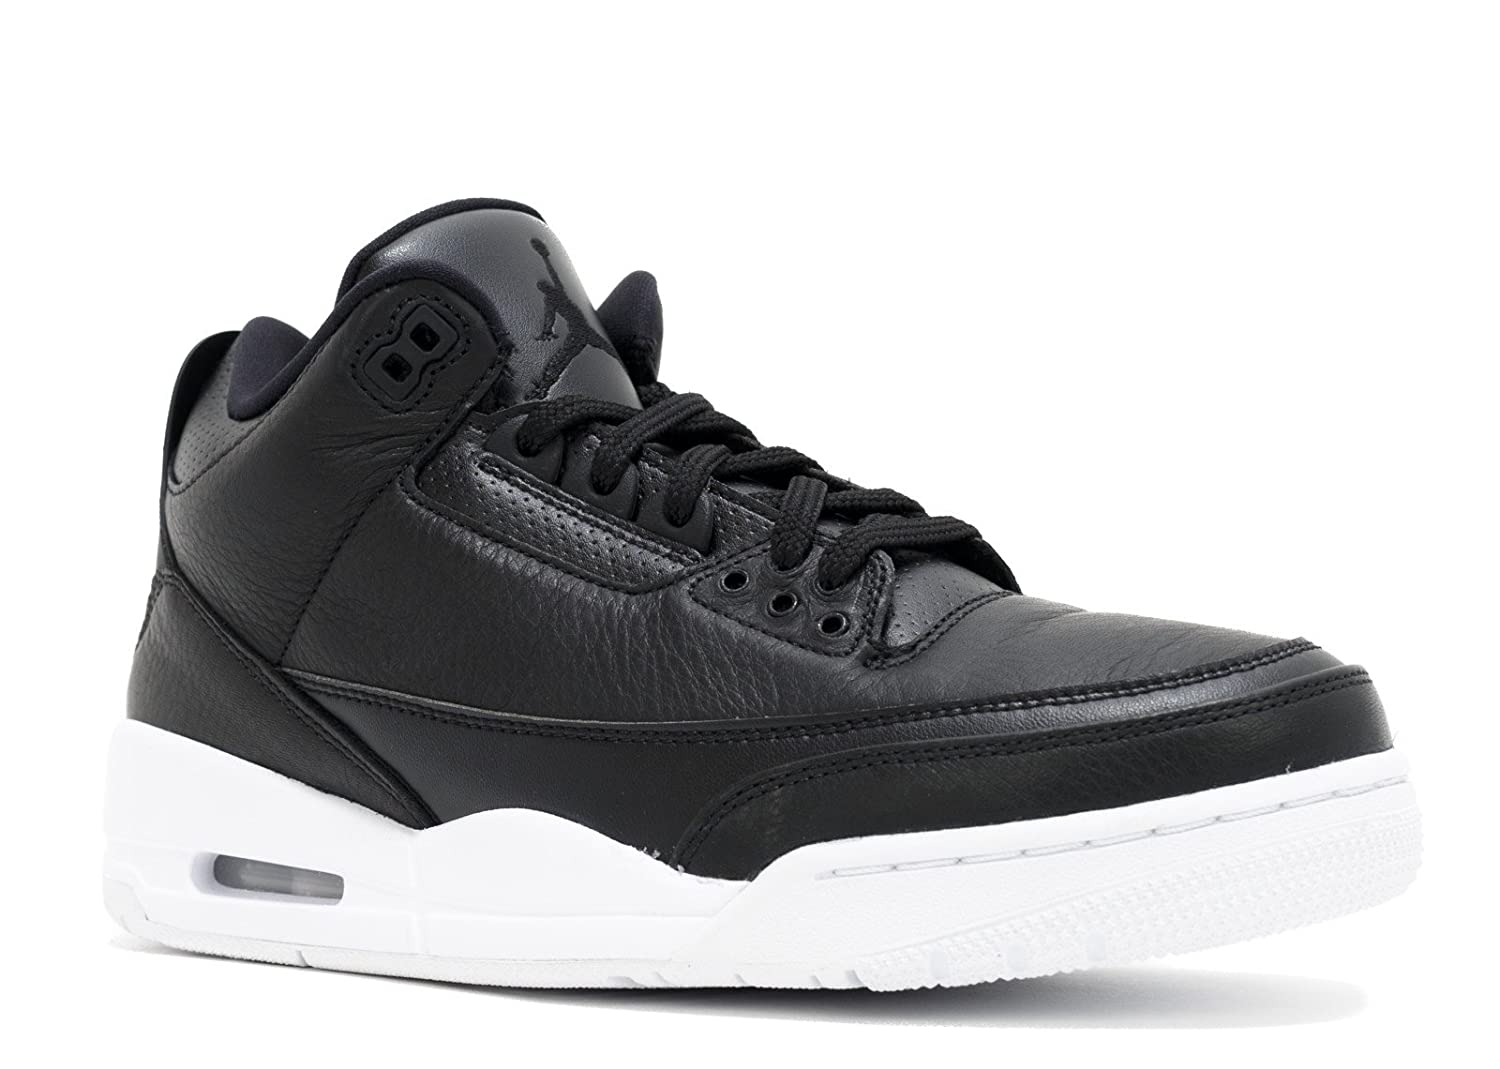 Nike Air Jordan Retro 3 Cyber Monday Mens Black White 136064-020 12